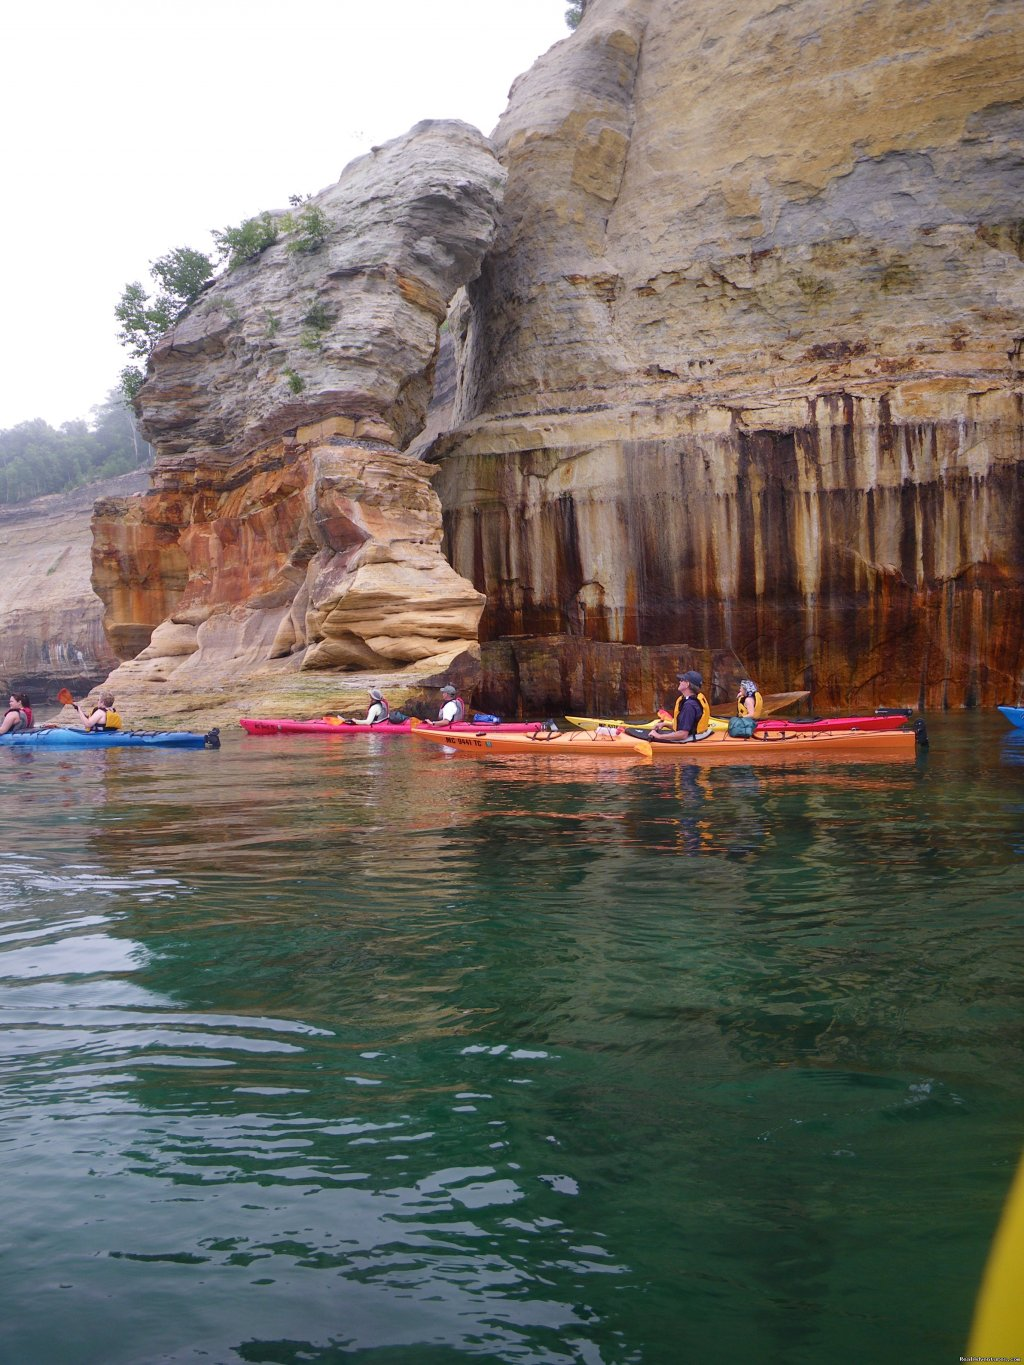 Pictured Rocks National Lakeshore | Image #1/25 | Marquette, Michigan  | Kayaking & Canoeing | Sea Kayaking the Pictured Rocks National Lakeshore